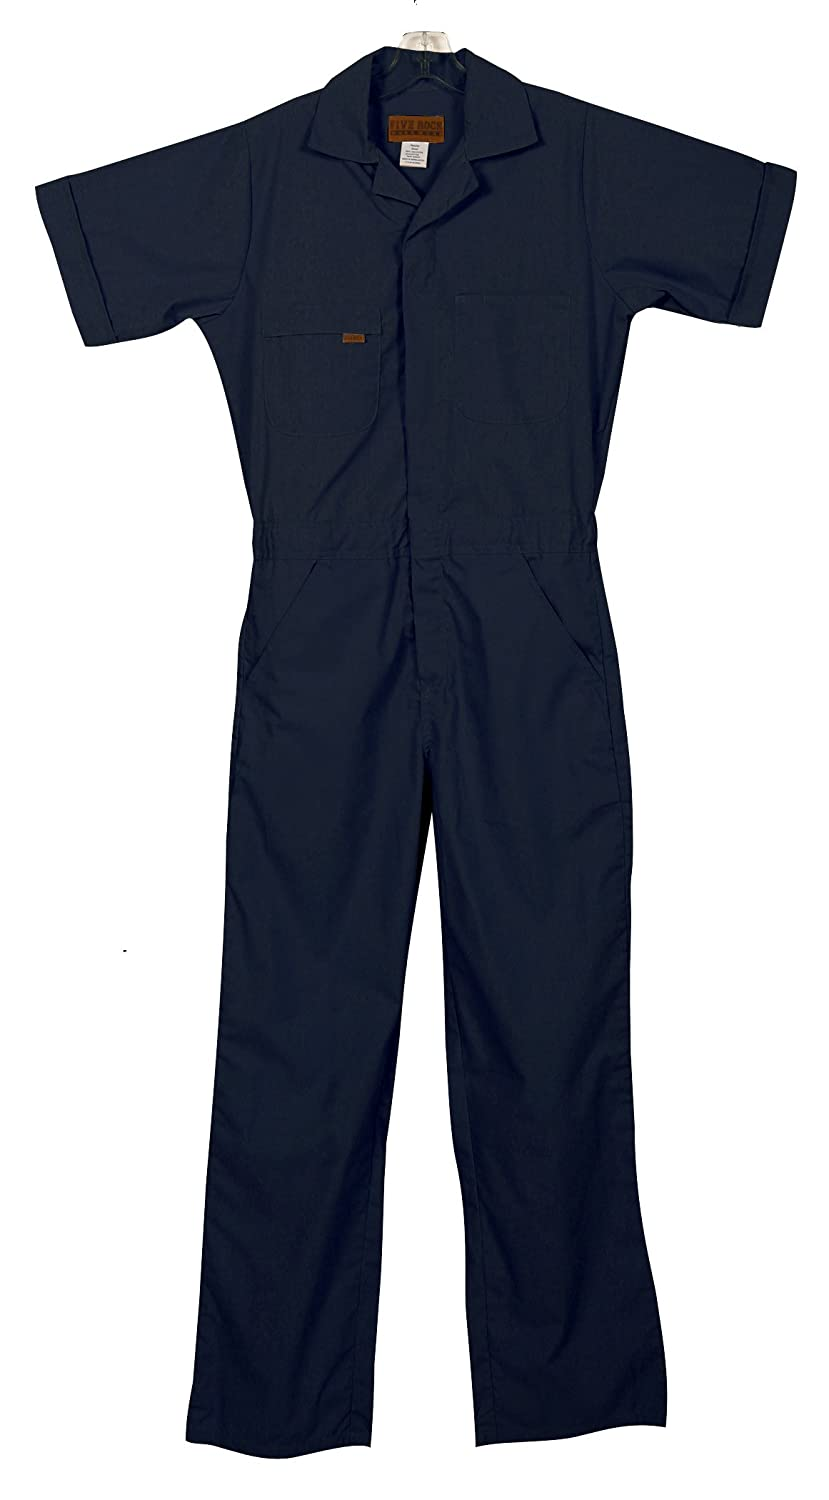 1940s Costume & Outfit Ideas – 16 Women's Looks Five Rock Poplin Short Sleeve Unlined Coveralls Regular Fit $42.39 AT vintagedancer.com